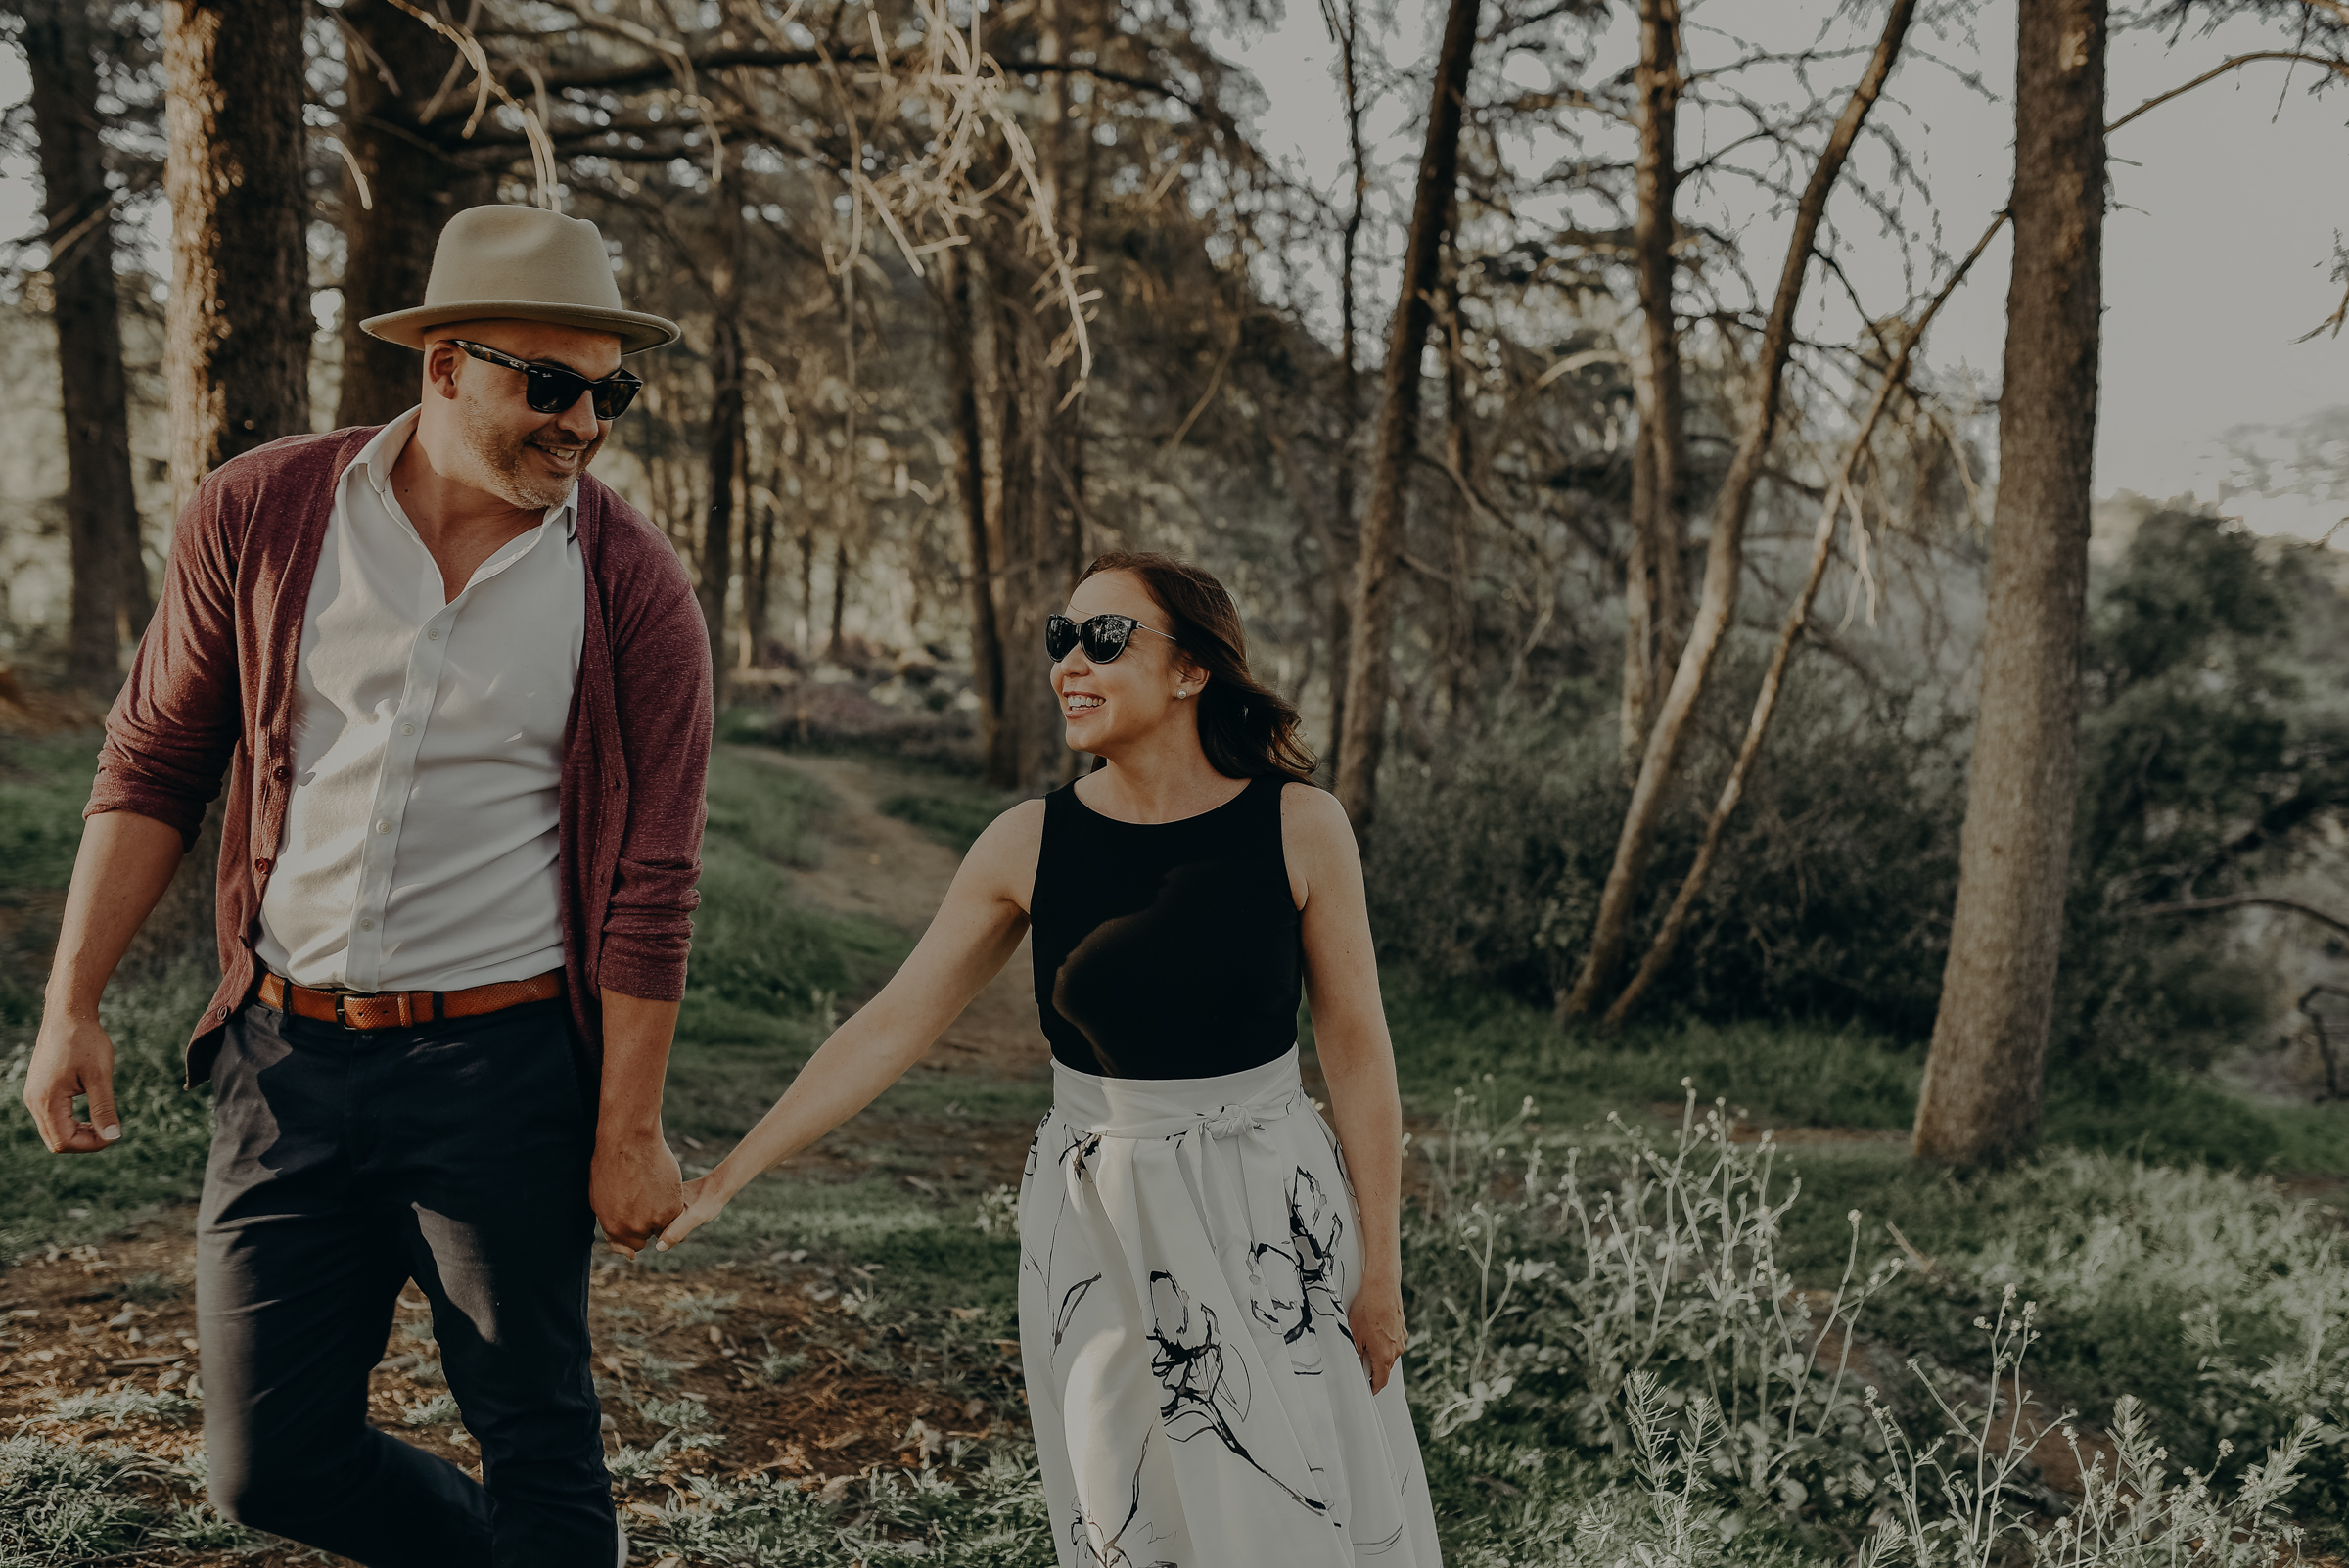 Los Angeles Wedding Photographers - Griffith Park Engagement - IsaiahAndTaylor.com-017.jpg